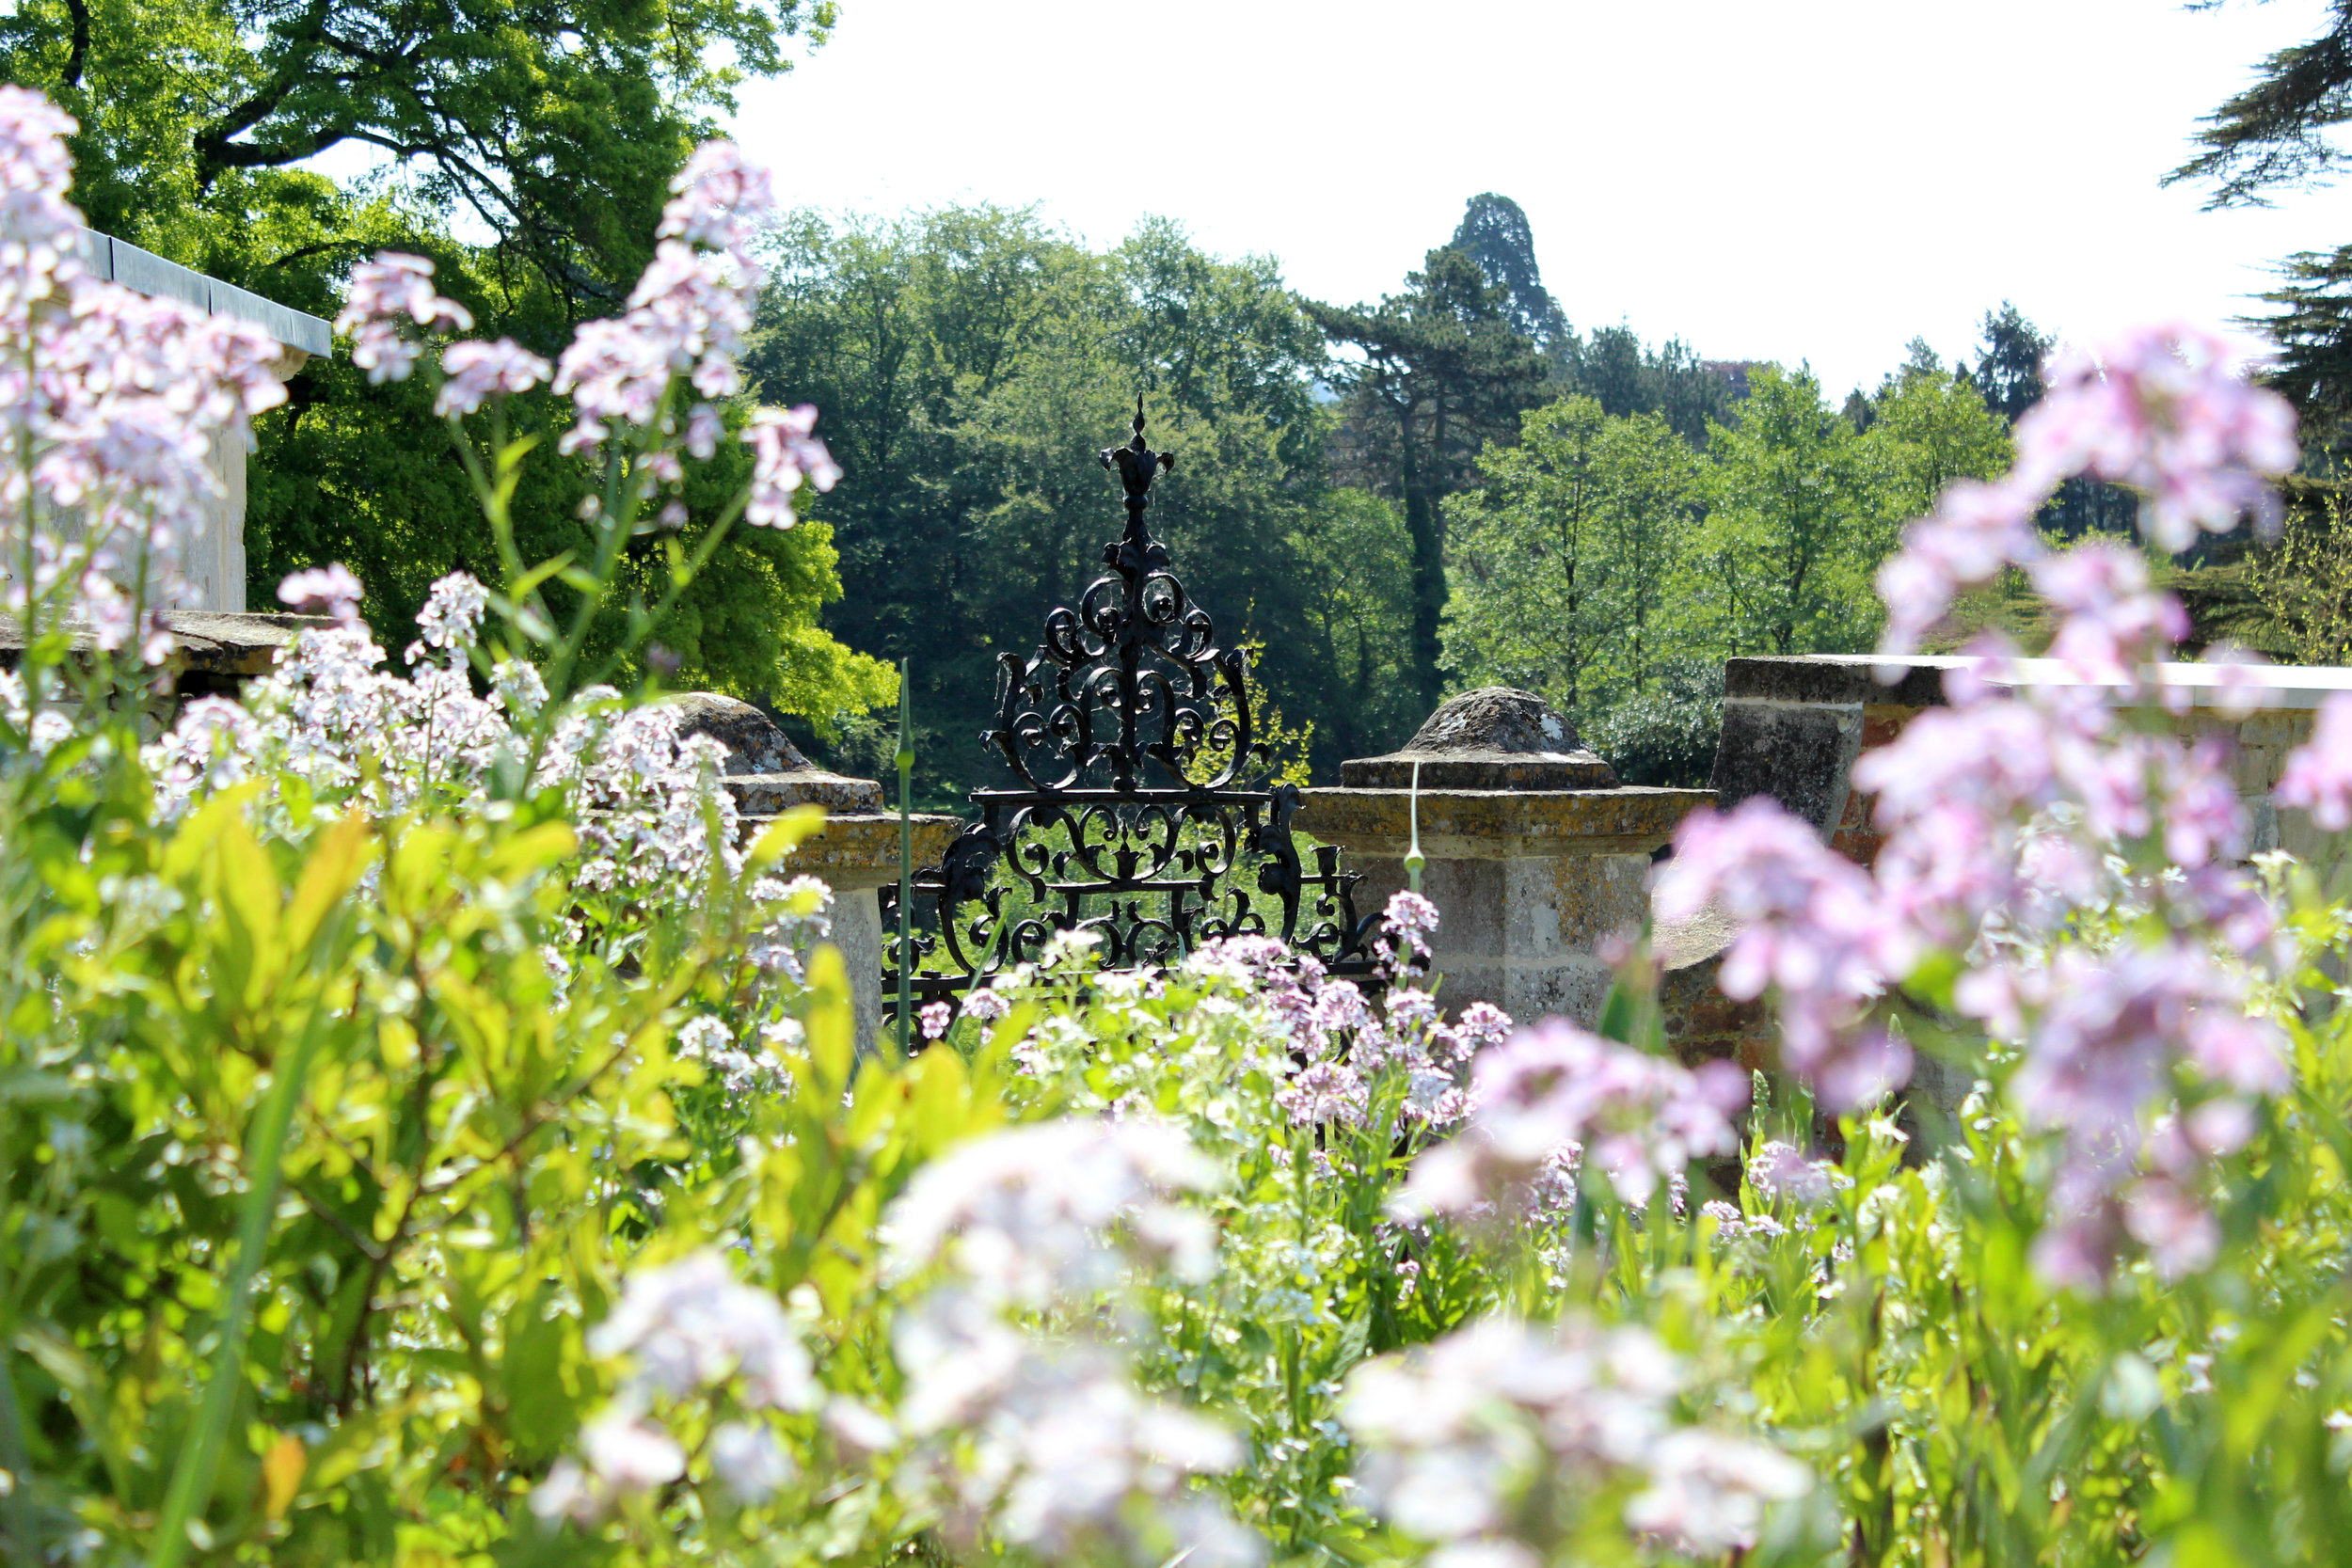 pHOTOGRAPH OF THE WALLED GARDEN SHOWING GLORIOUS BLOOMS OF FLOWERS WITH THE HISTORIC GATE IN THE BACKGROUND SET AGAINST THE ARBORETUM OF THE PARK